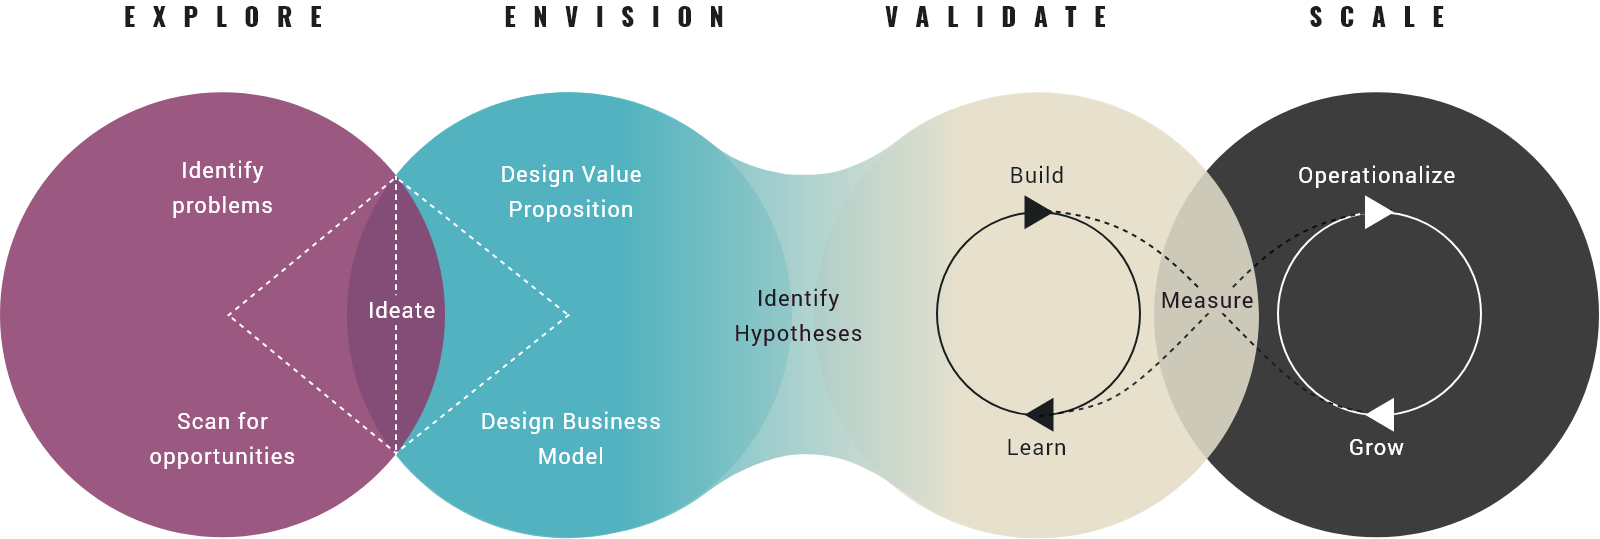 Innovation Journey by TheVentury